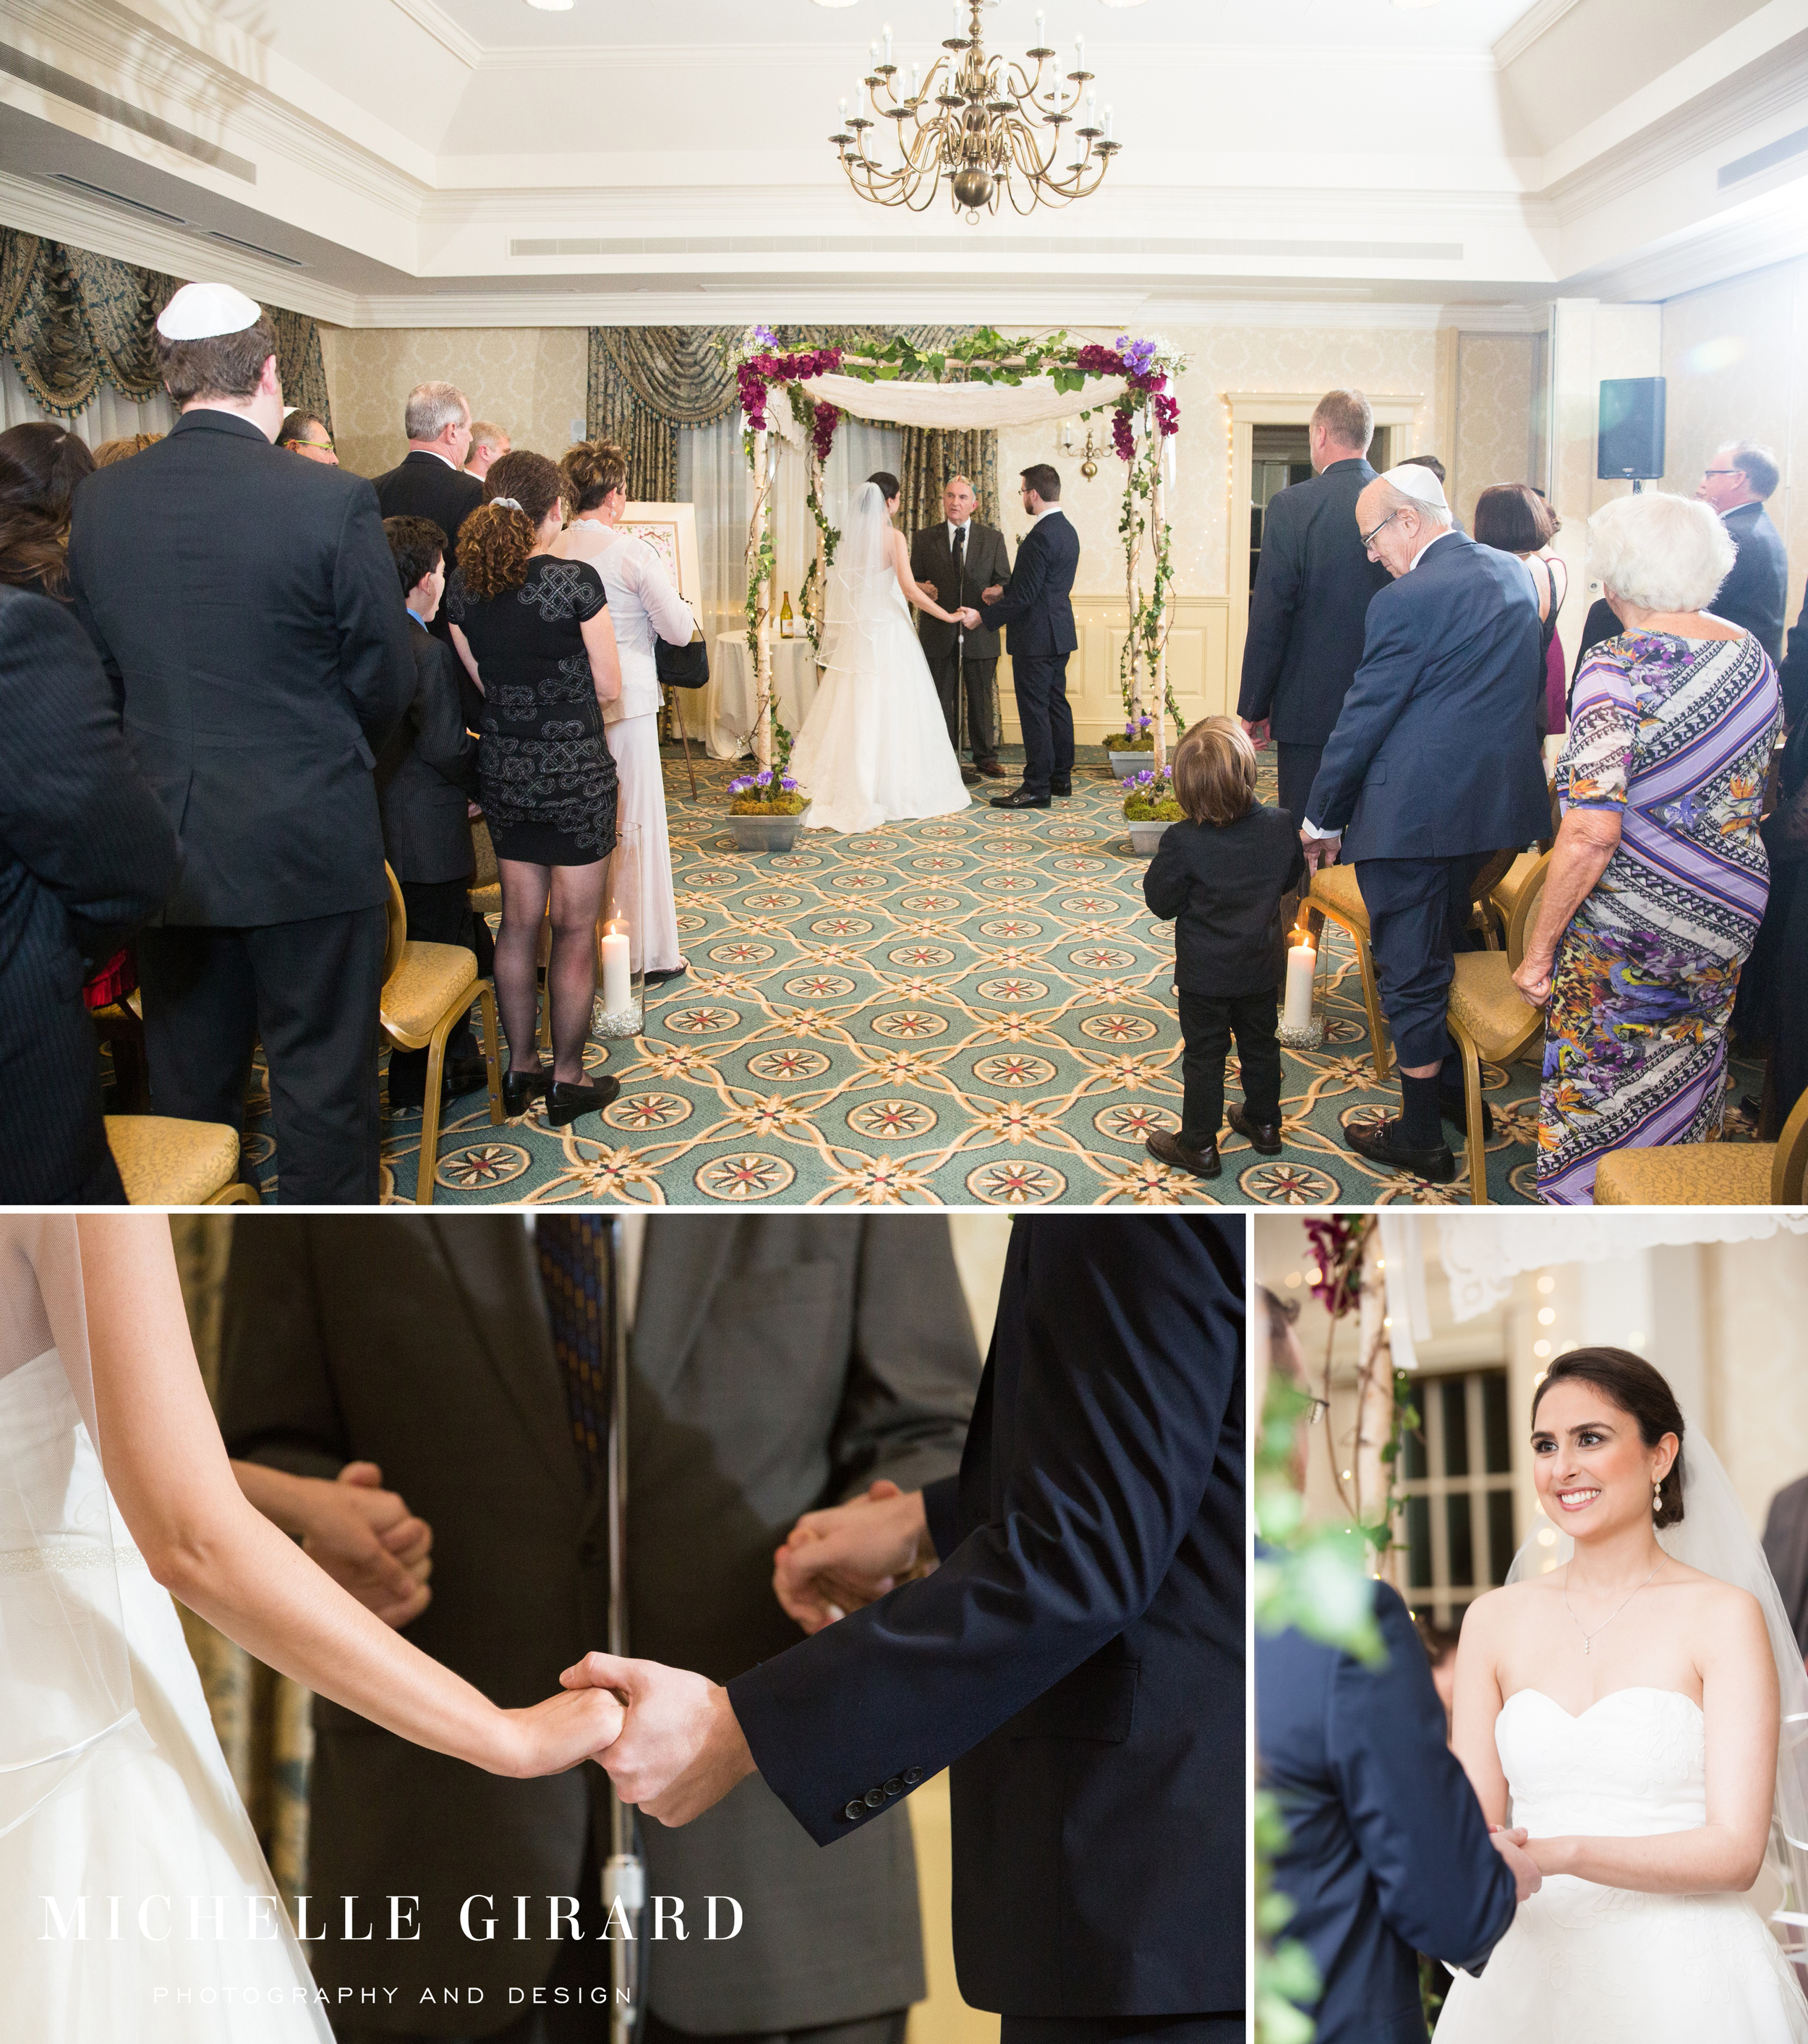 LordJefferyInnWedding_AmherstMa_MichelleGirardPhotography34.jpg